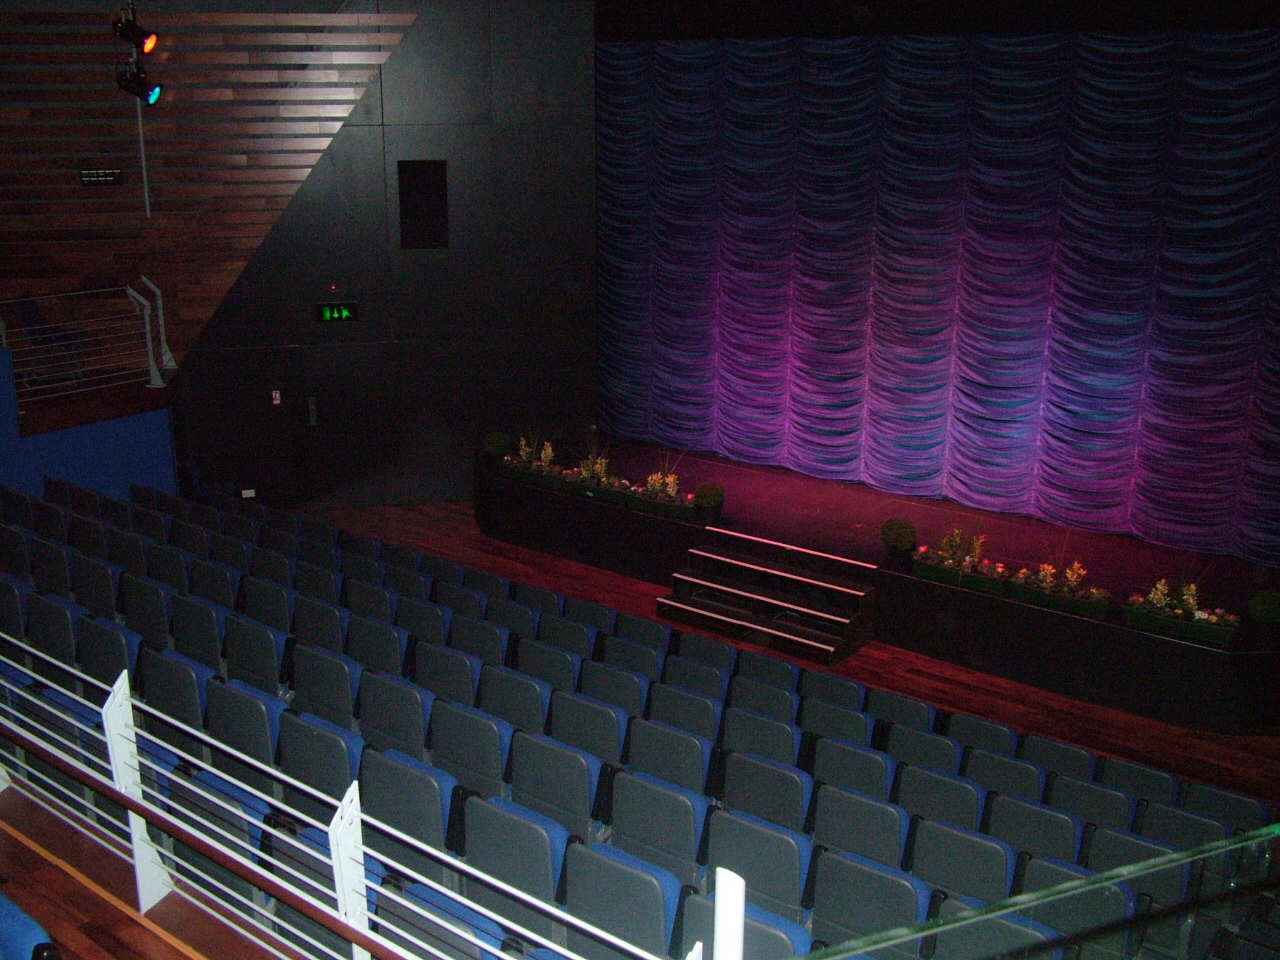 The auditorium of An Lanntair